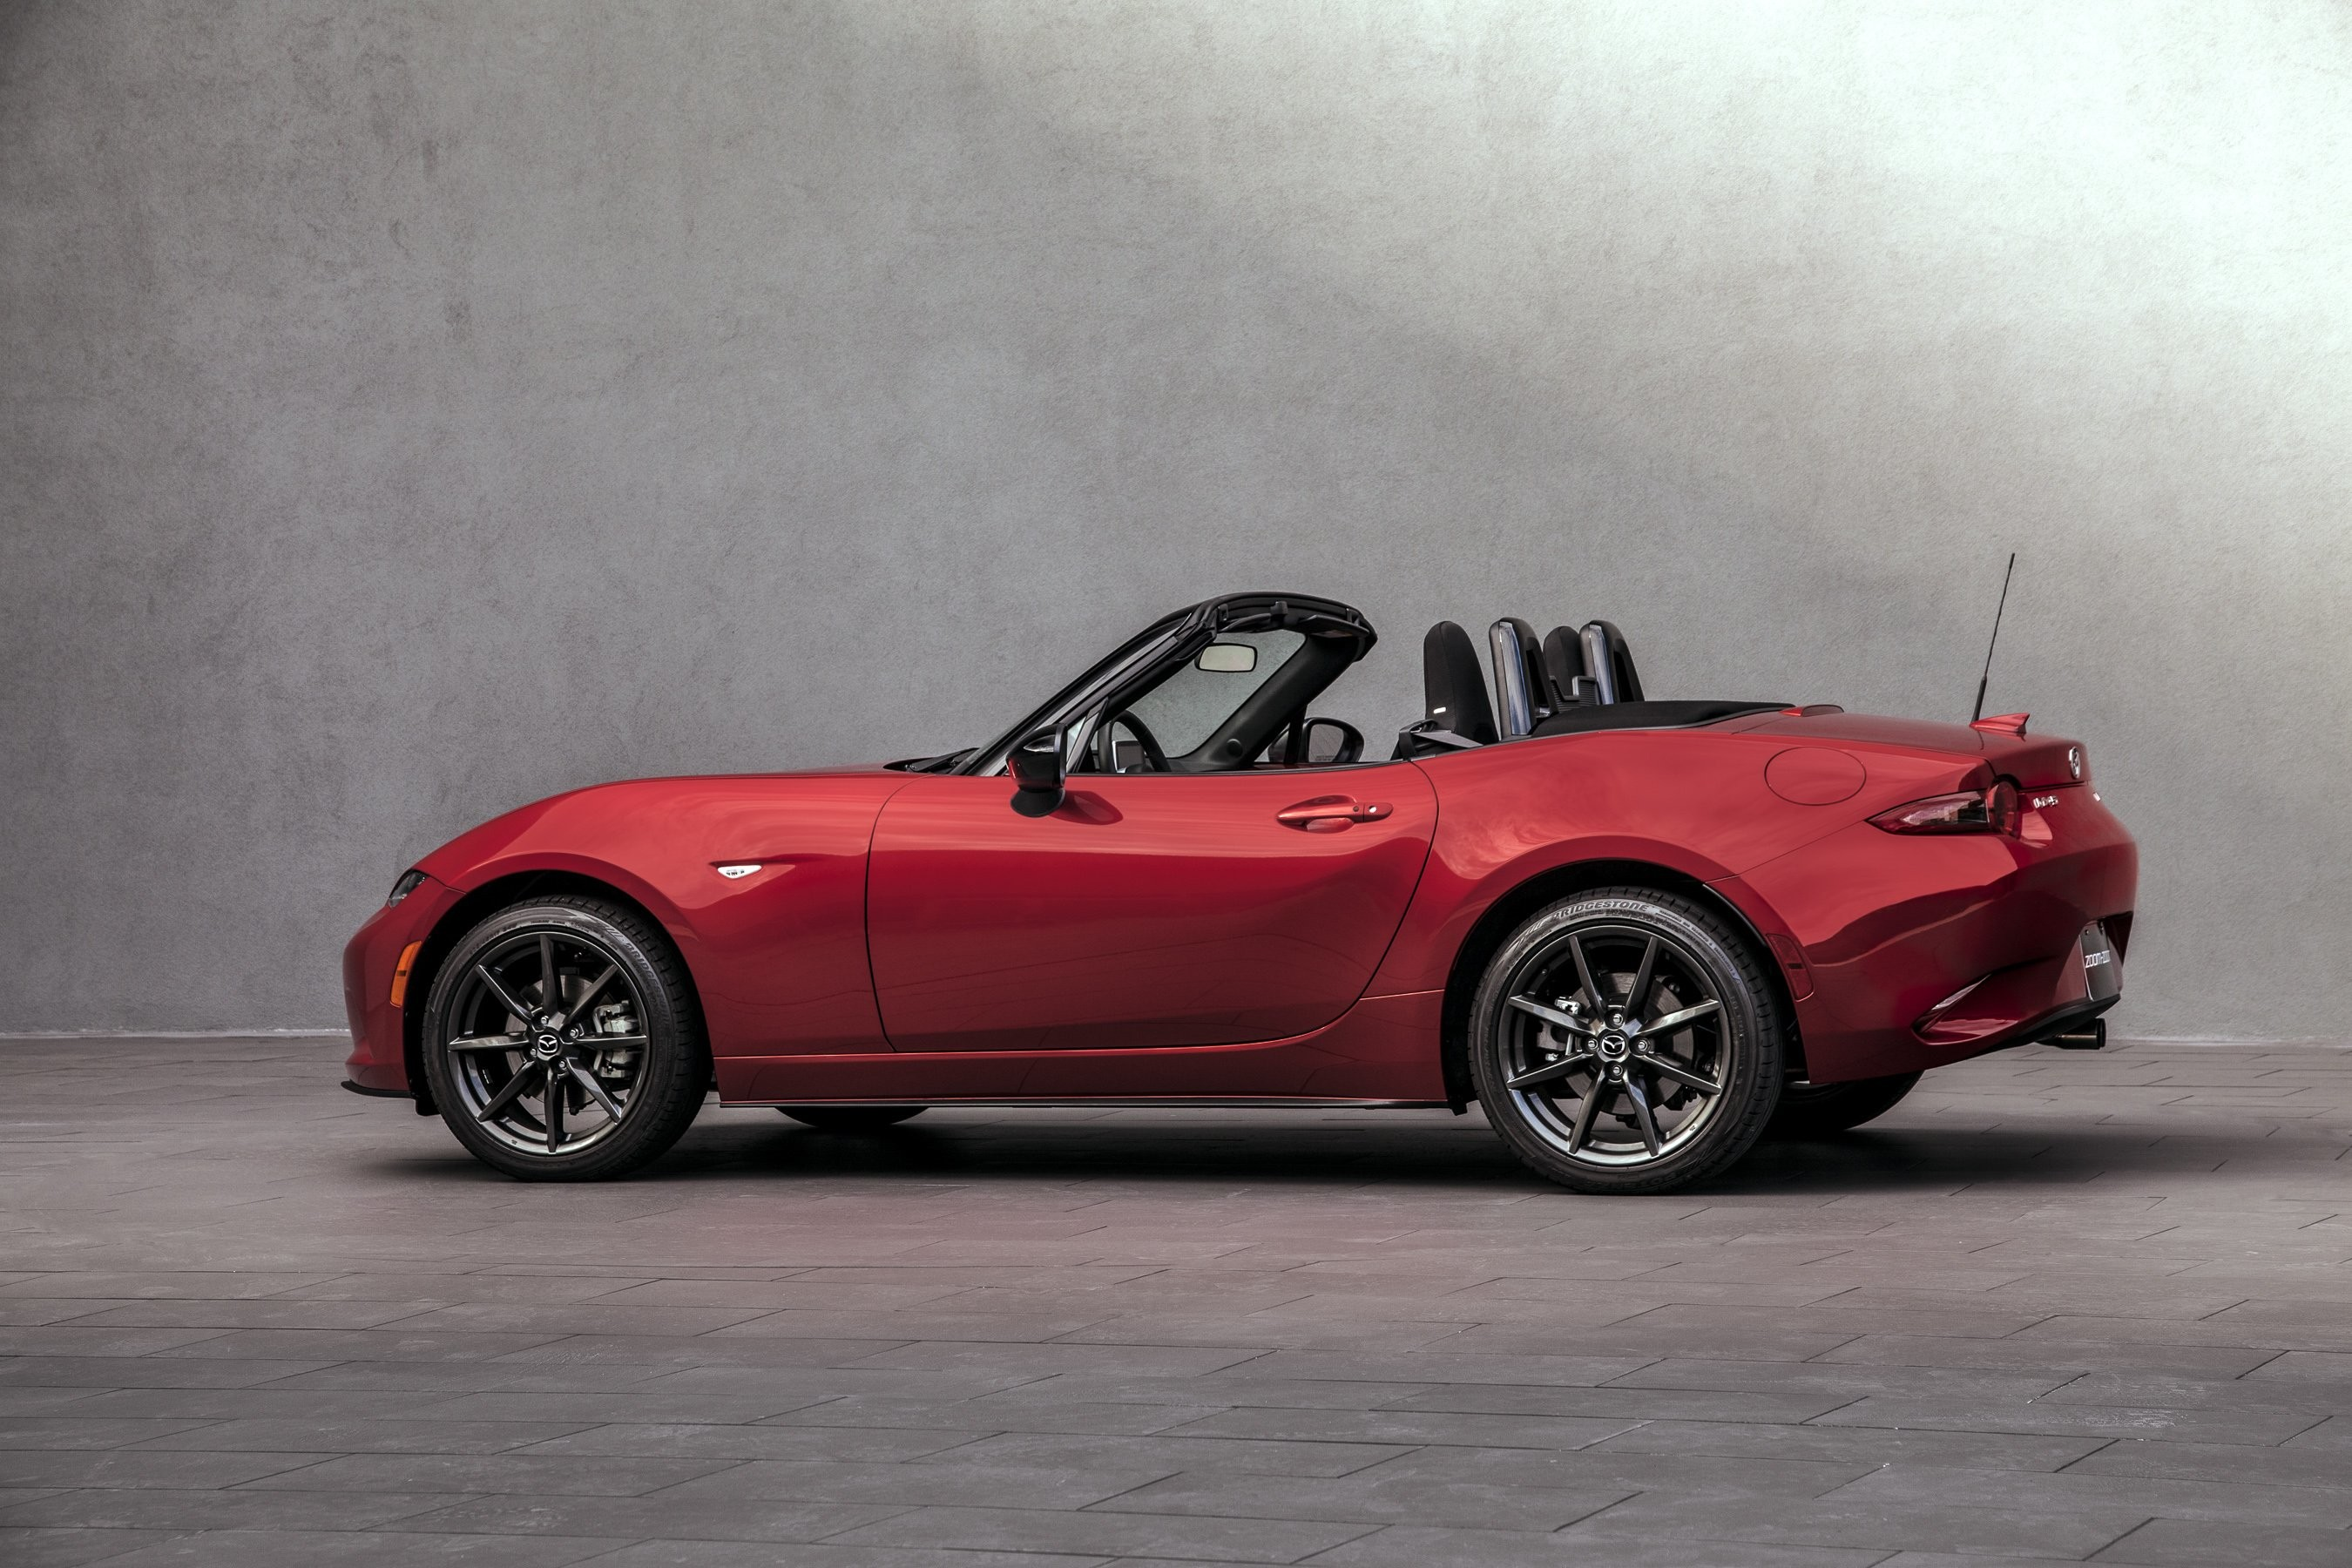 2048x1152 Mazda Miata Mazda MX5 Coupe Roadster Japan Tuning Cabriolet Cars  Wallpaper | 2048x1152 | 498543 | WallpaperUP